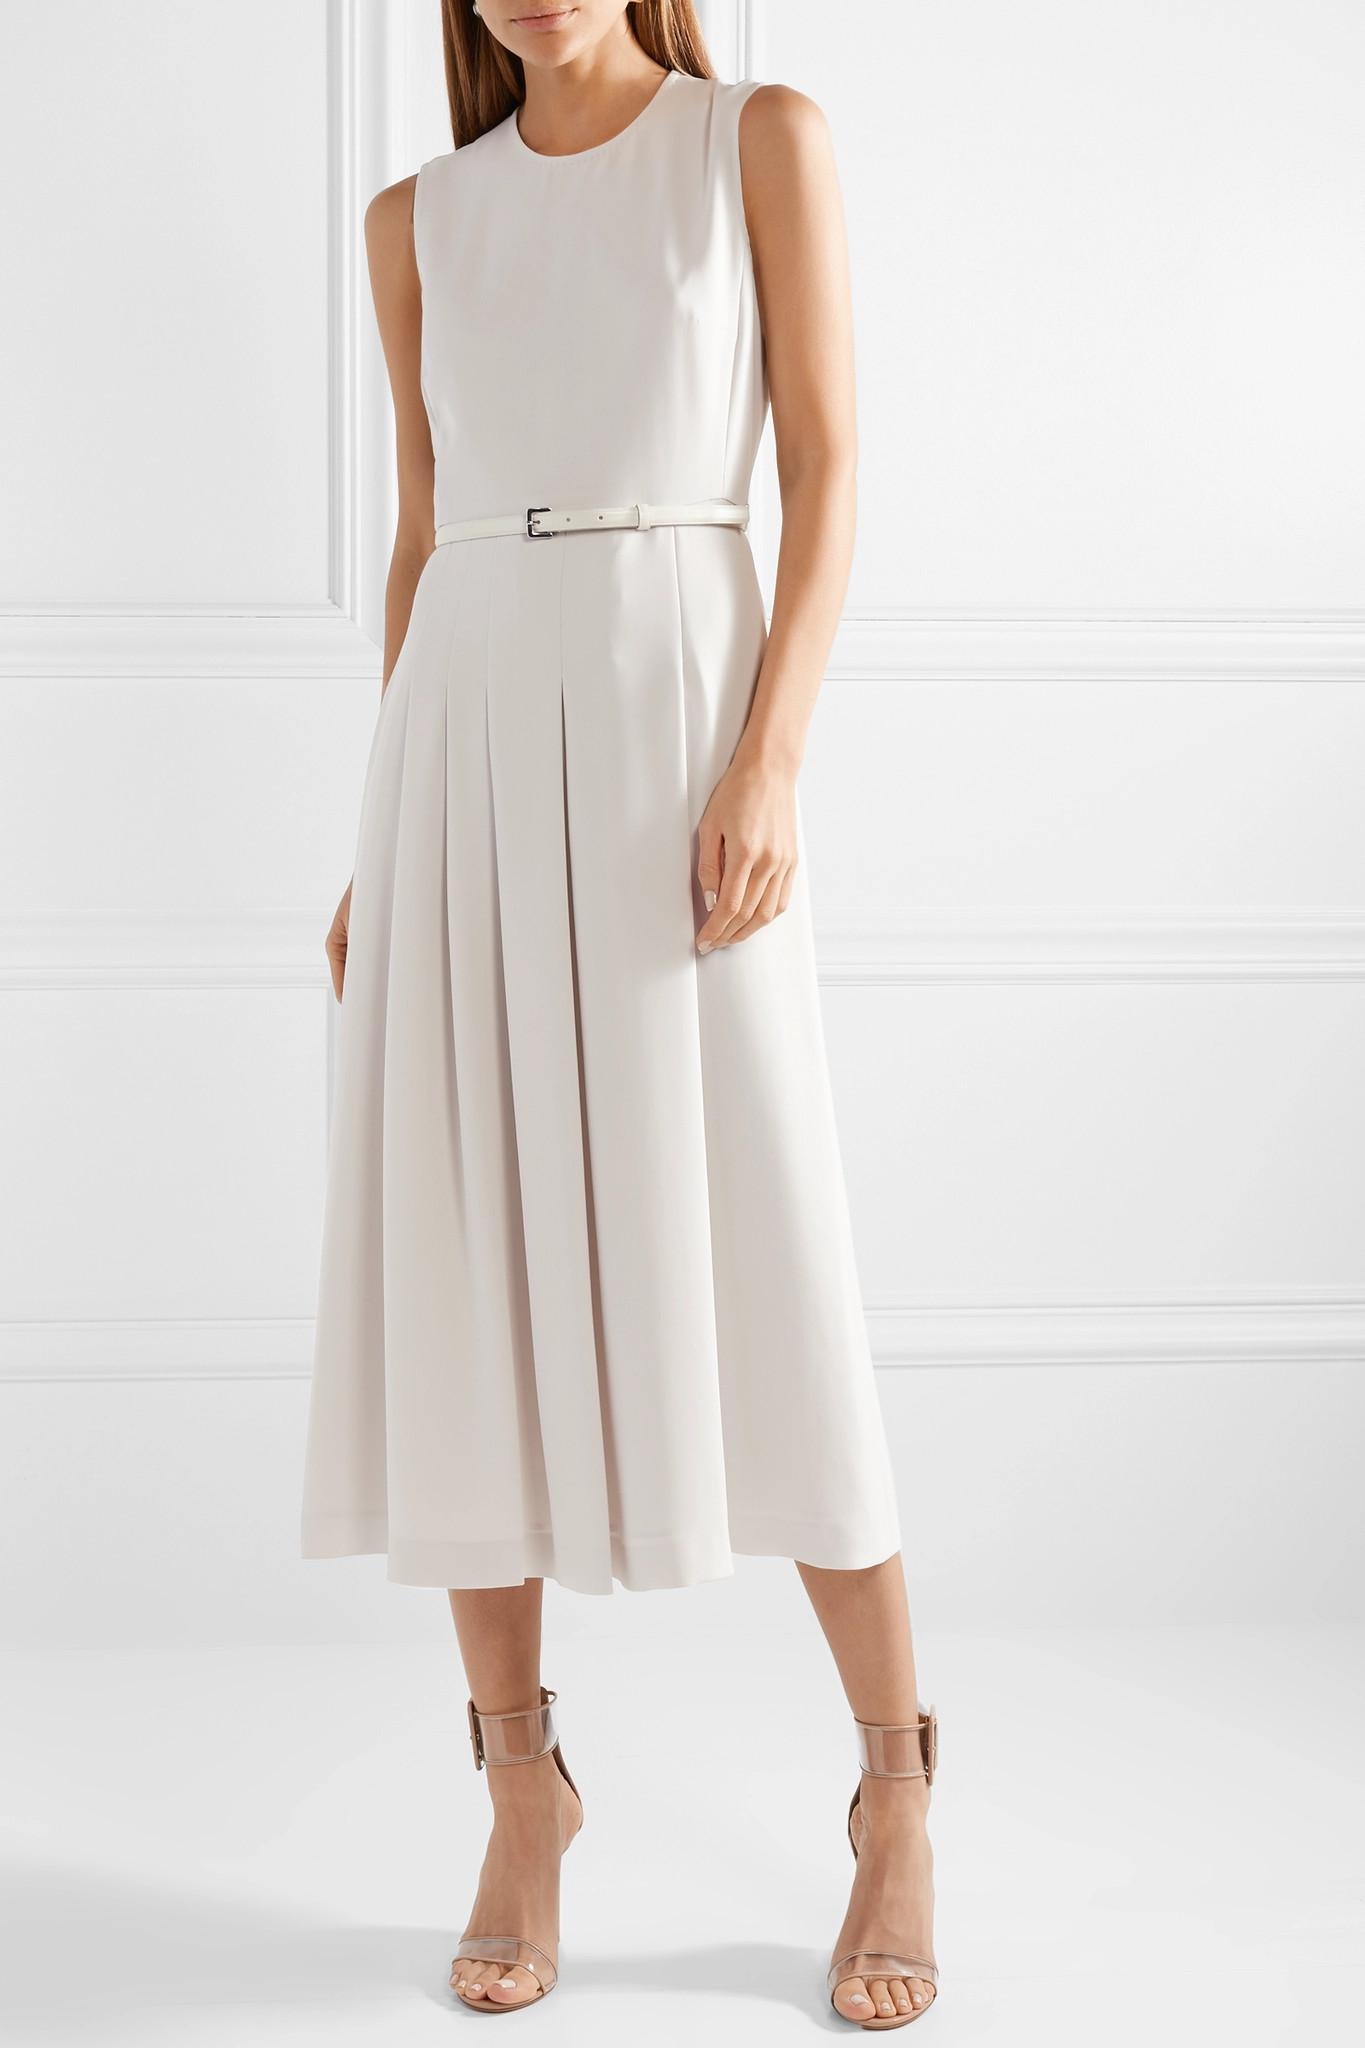 b36592151 Max Mara Belted Stretch-cady Midi Dress in White - Lyst